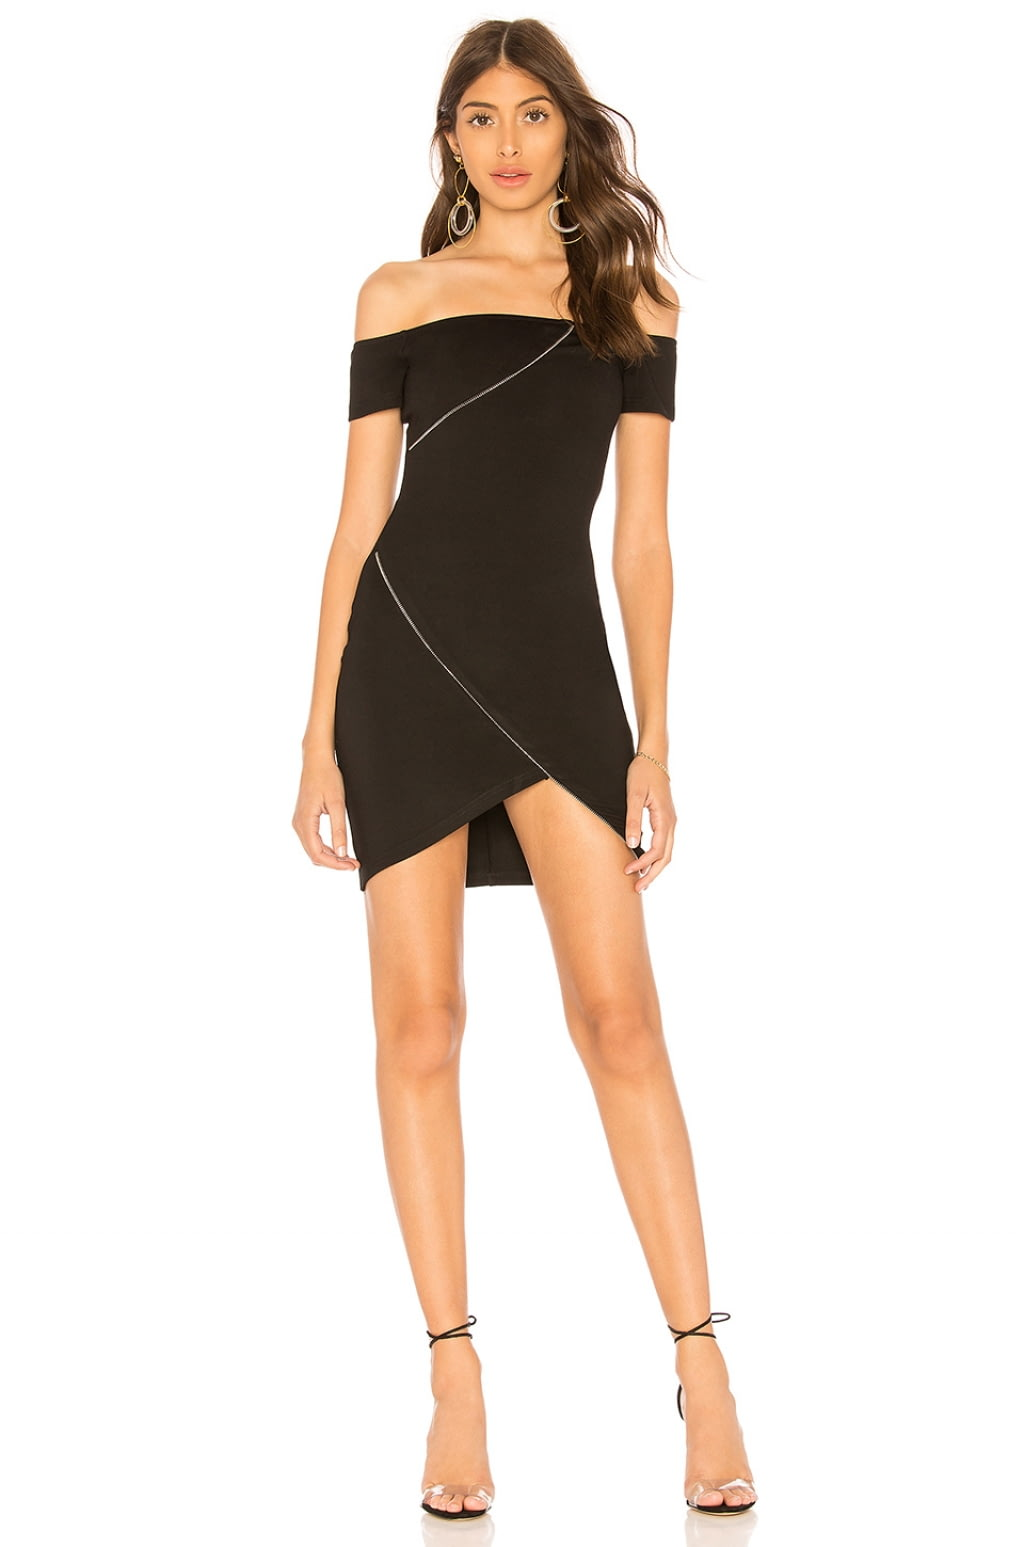 Denise Off Shoulder Zipper Dress in Black. - size L (also in M,S,XS,XXS) by the way.